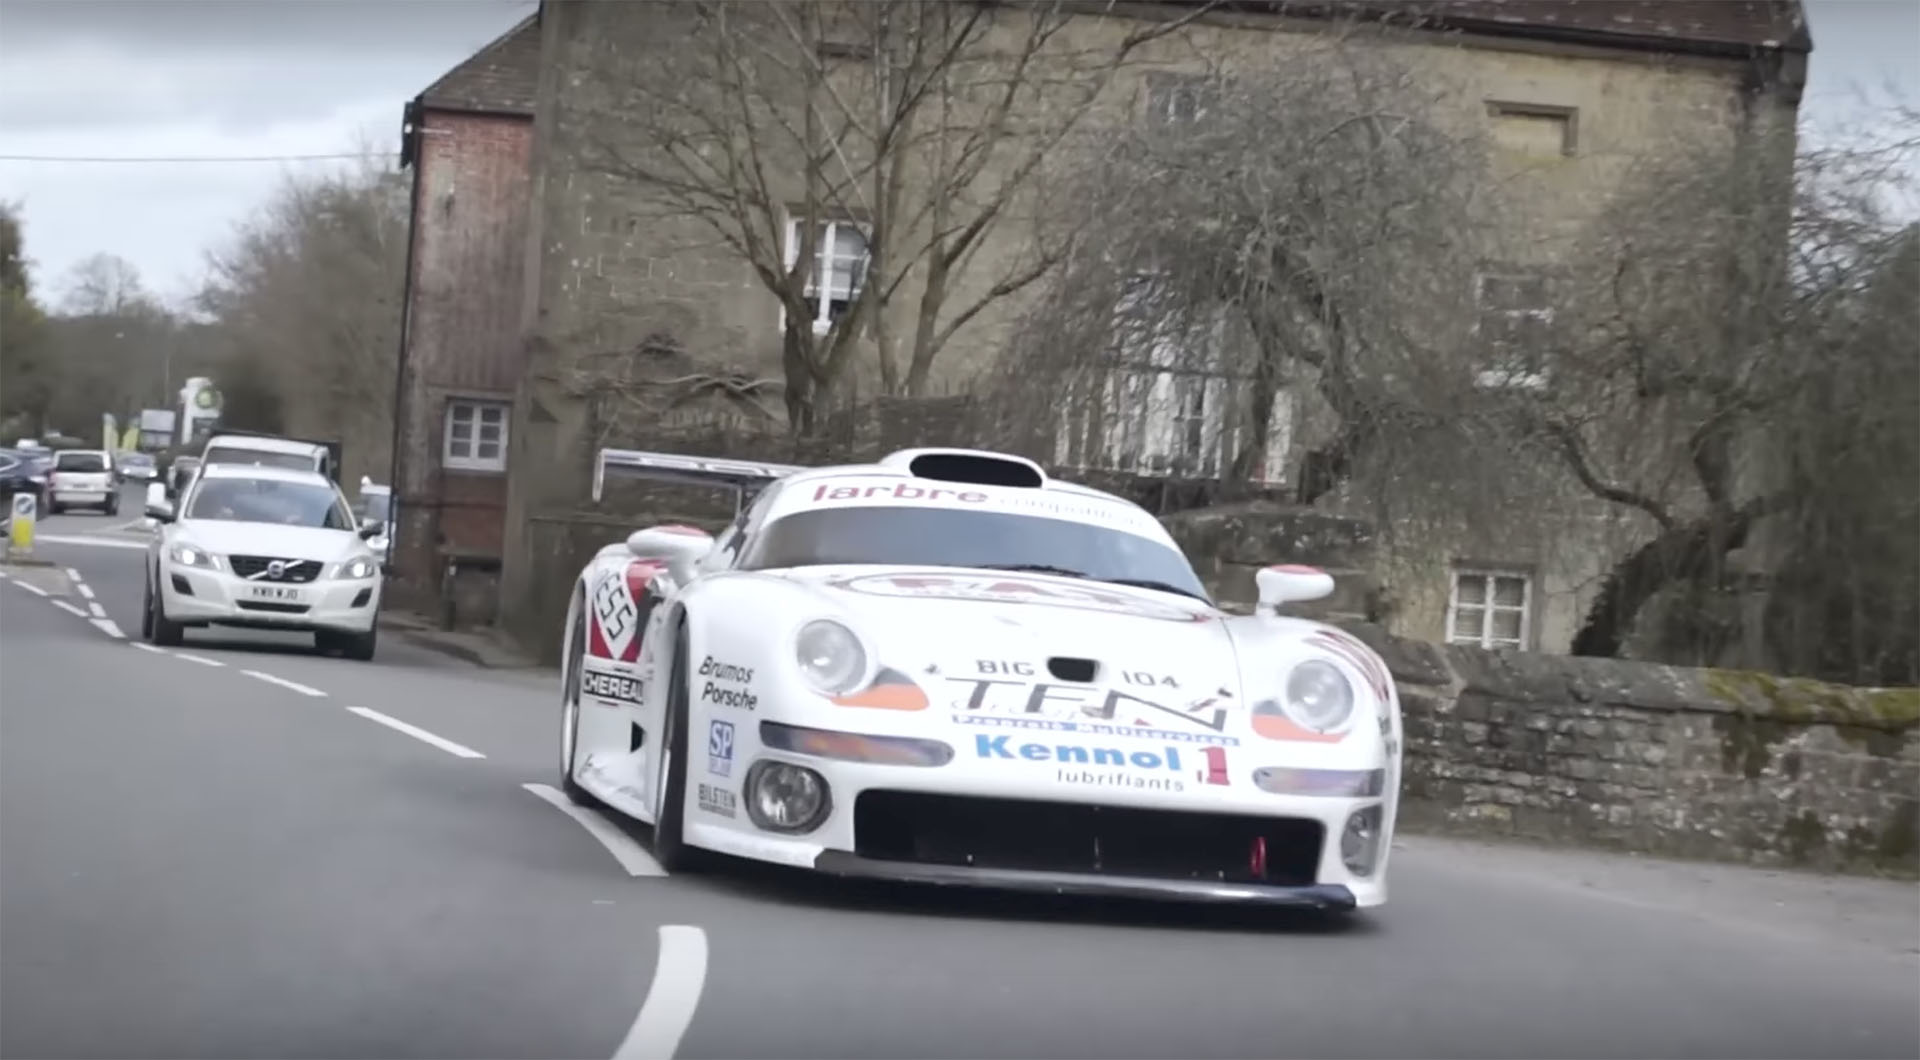 Take a ride in the Porsche 911 GT1 down a public street